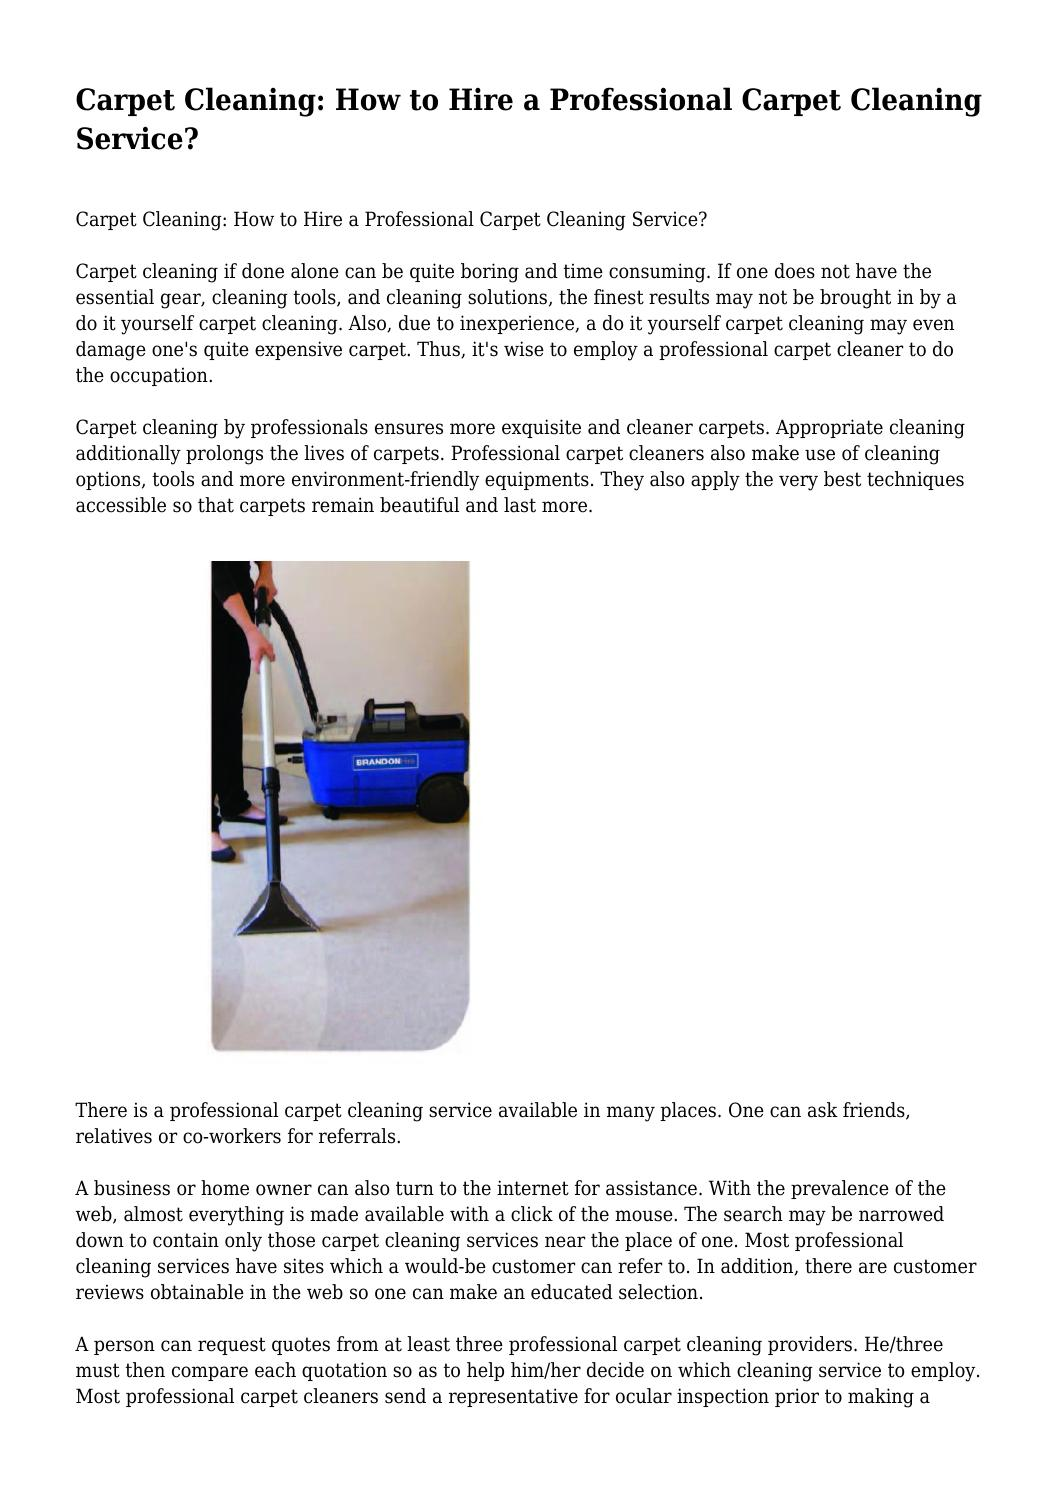 Carpet cleaning how to hire a professional carpet cleaning service carpet cleaning how to hire a professional carpet cleaning service by incandescentodo91 issuu solutioingenieria Images